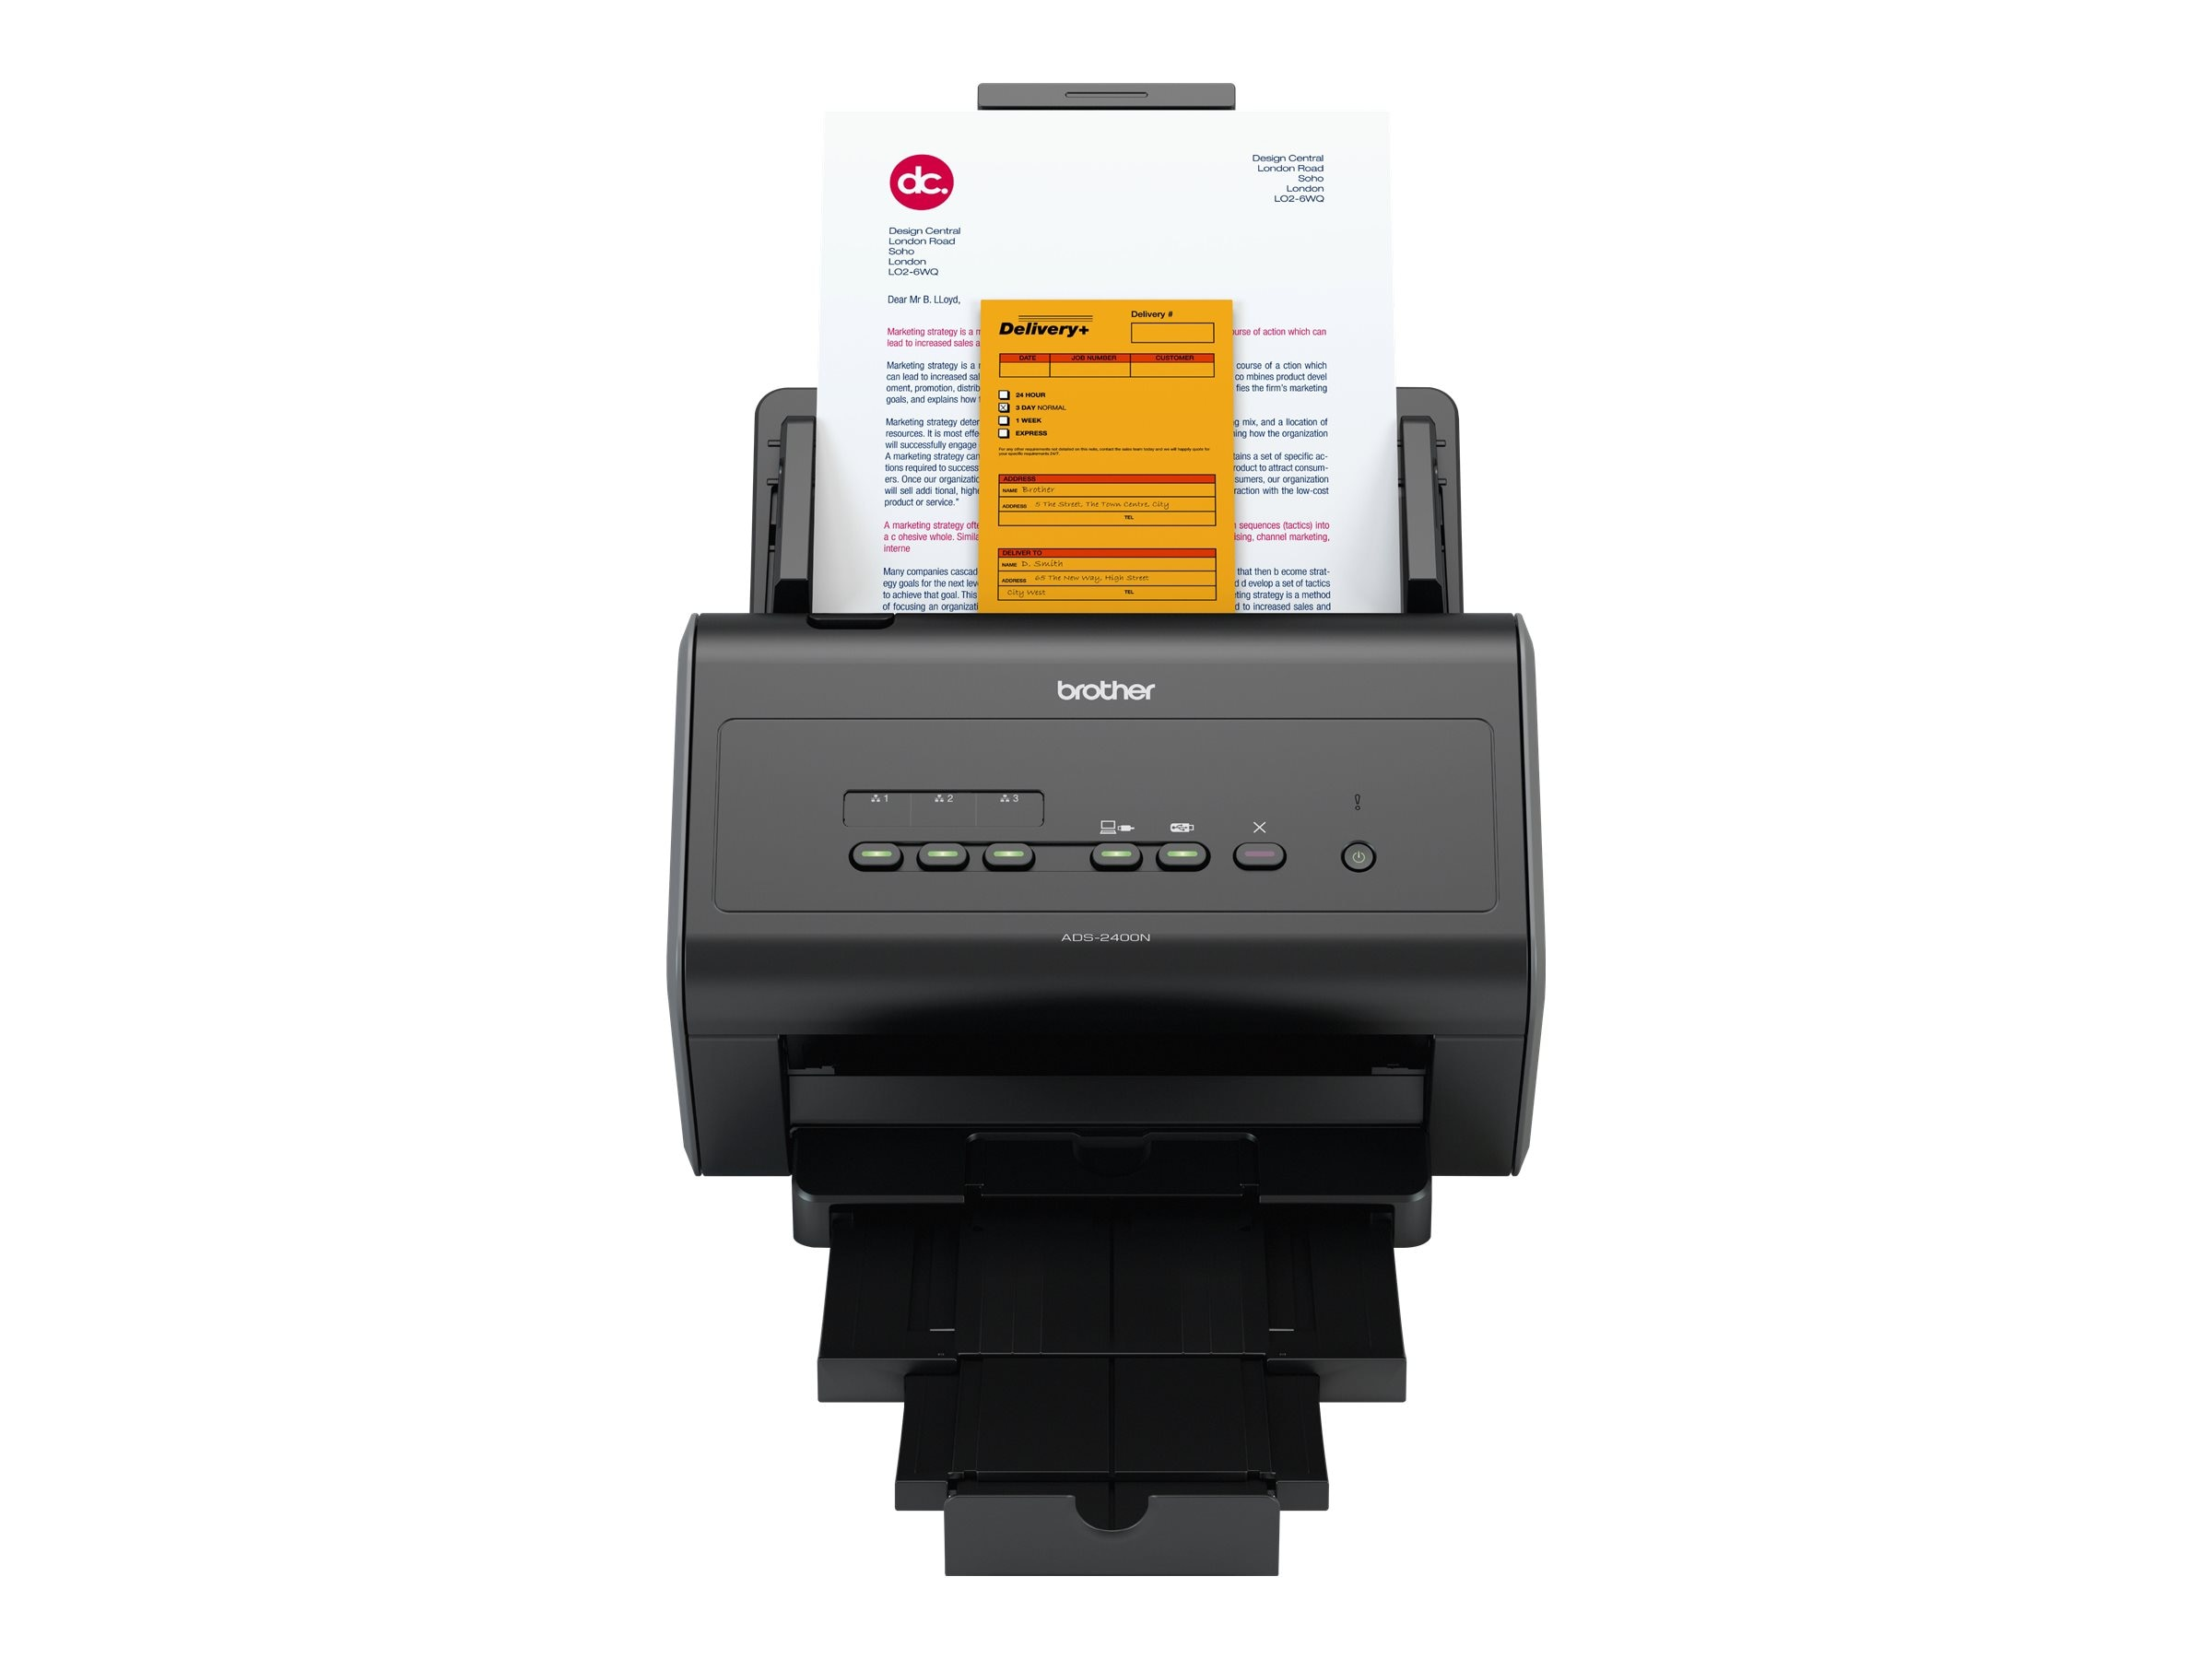 Brother Network Scanner Mid to Large Size Work Groups